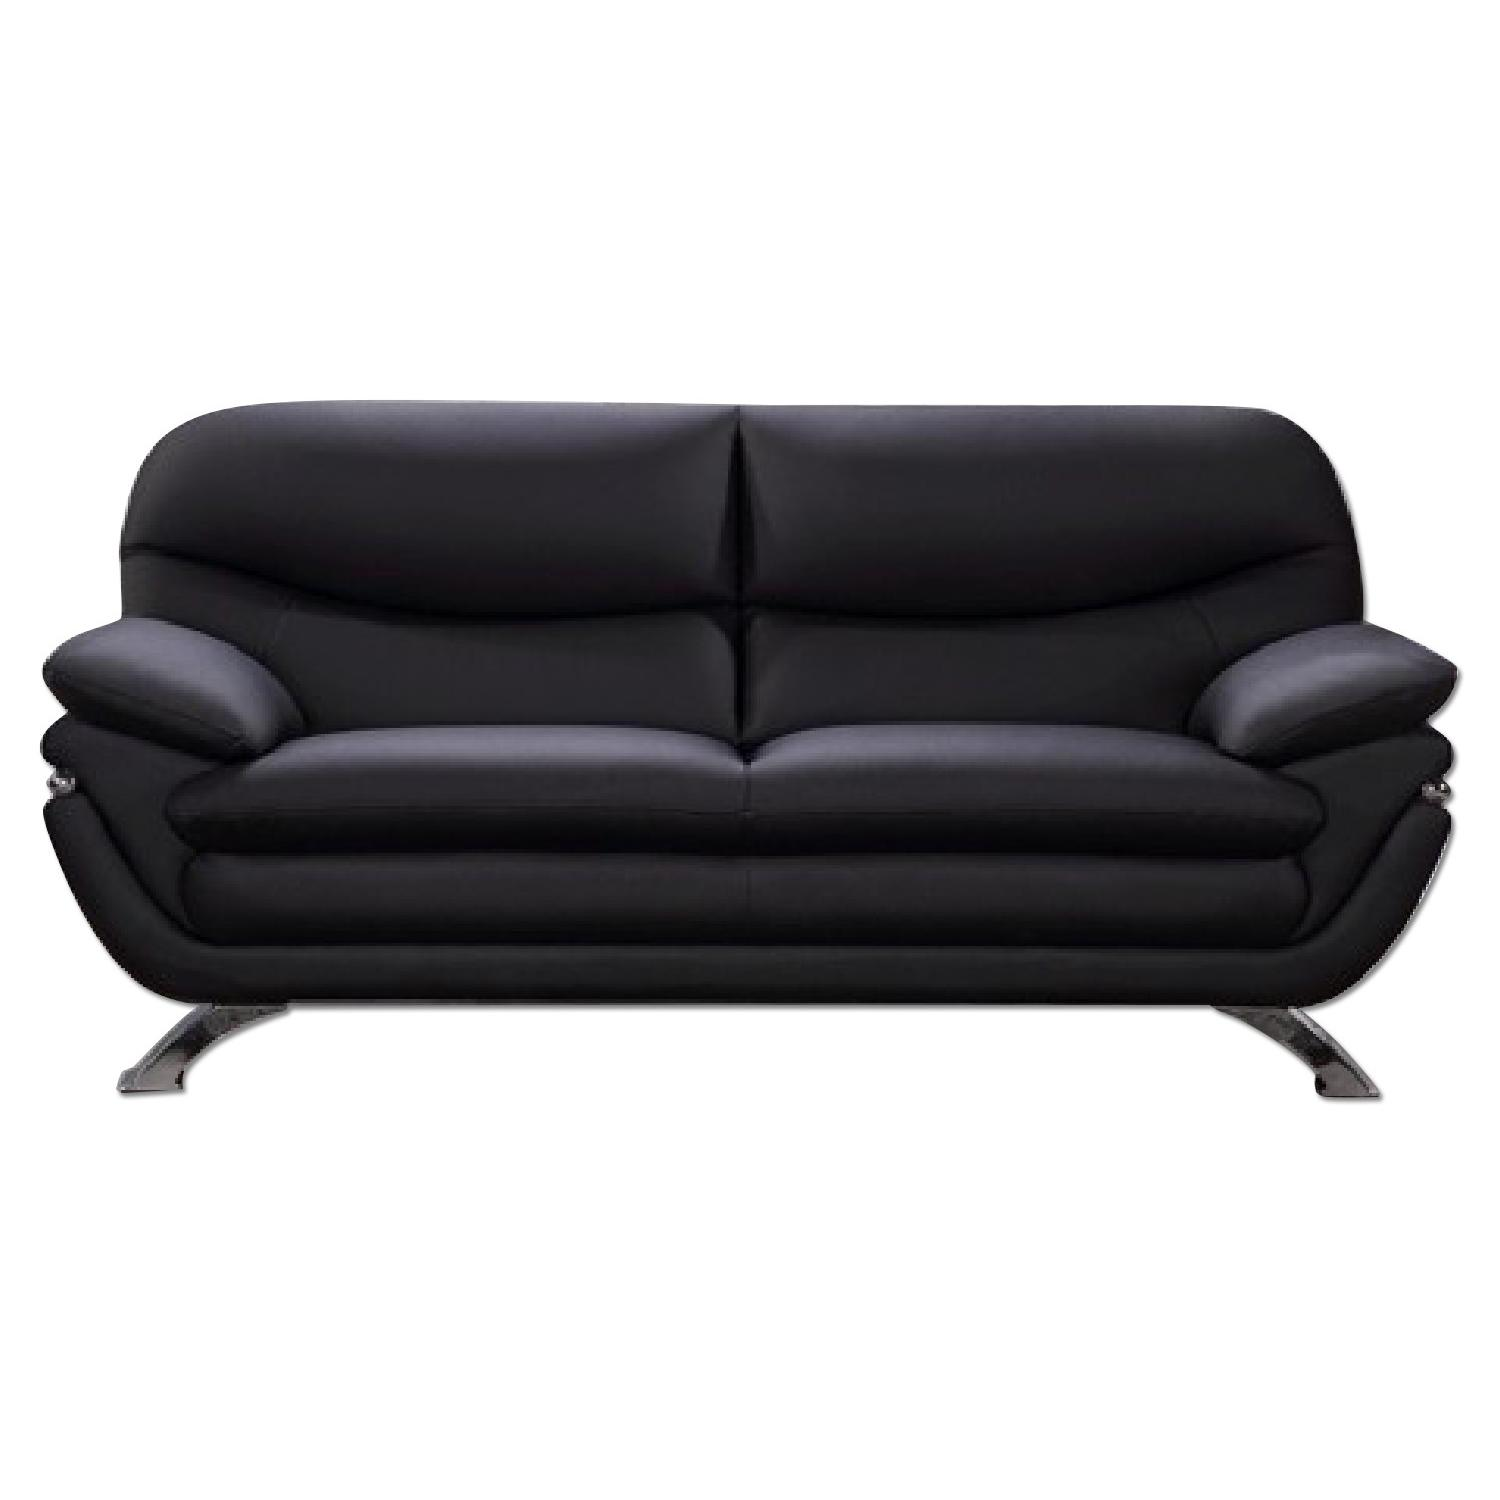 Modern Style Sofa in Black Top Grain Leather w Clean AptDeco